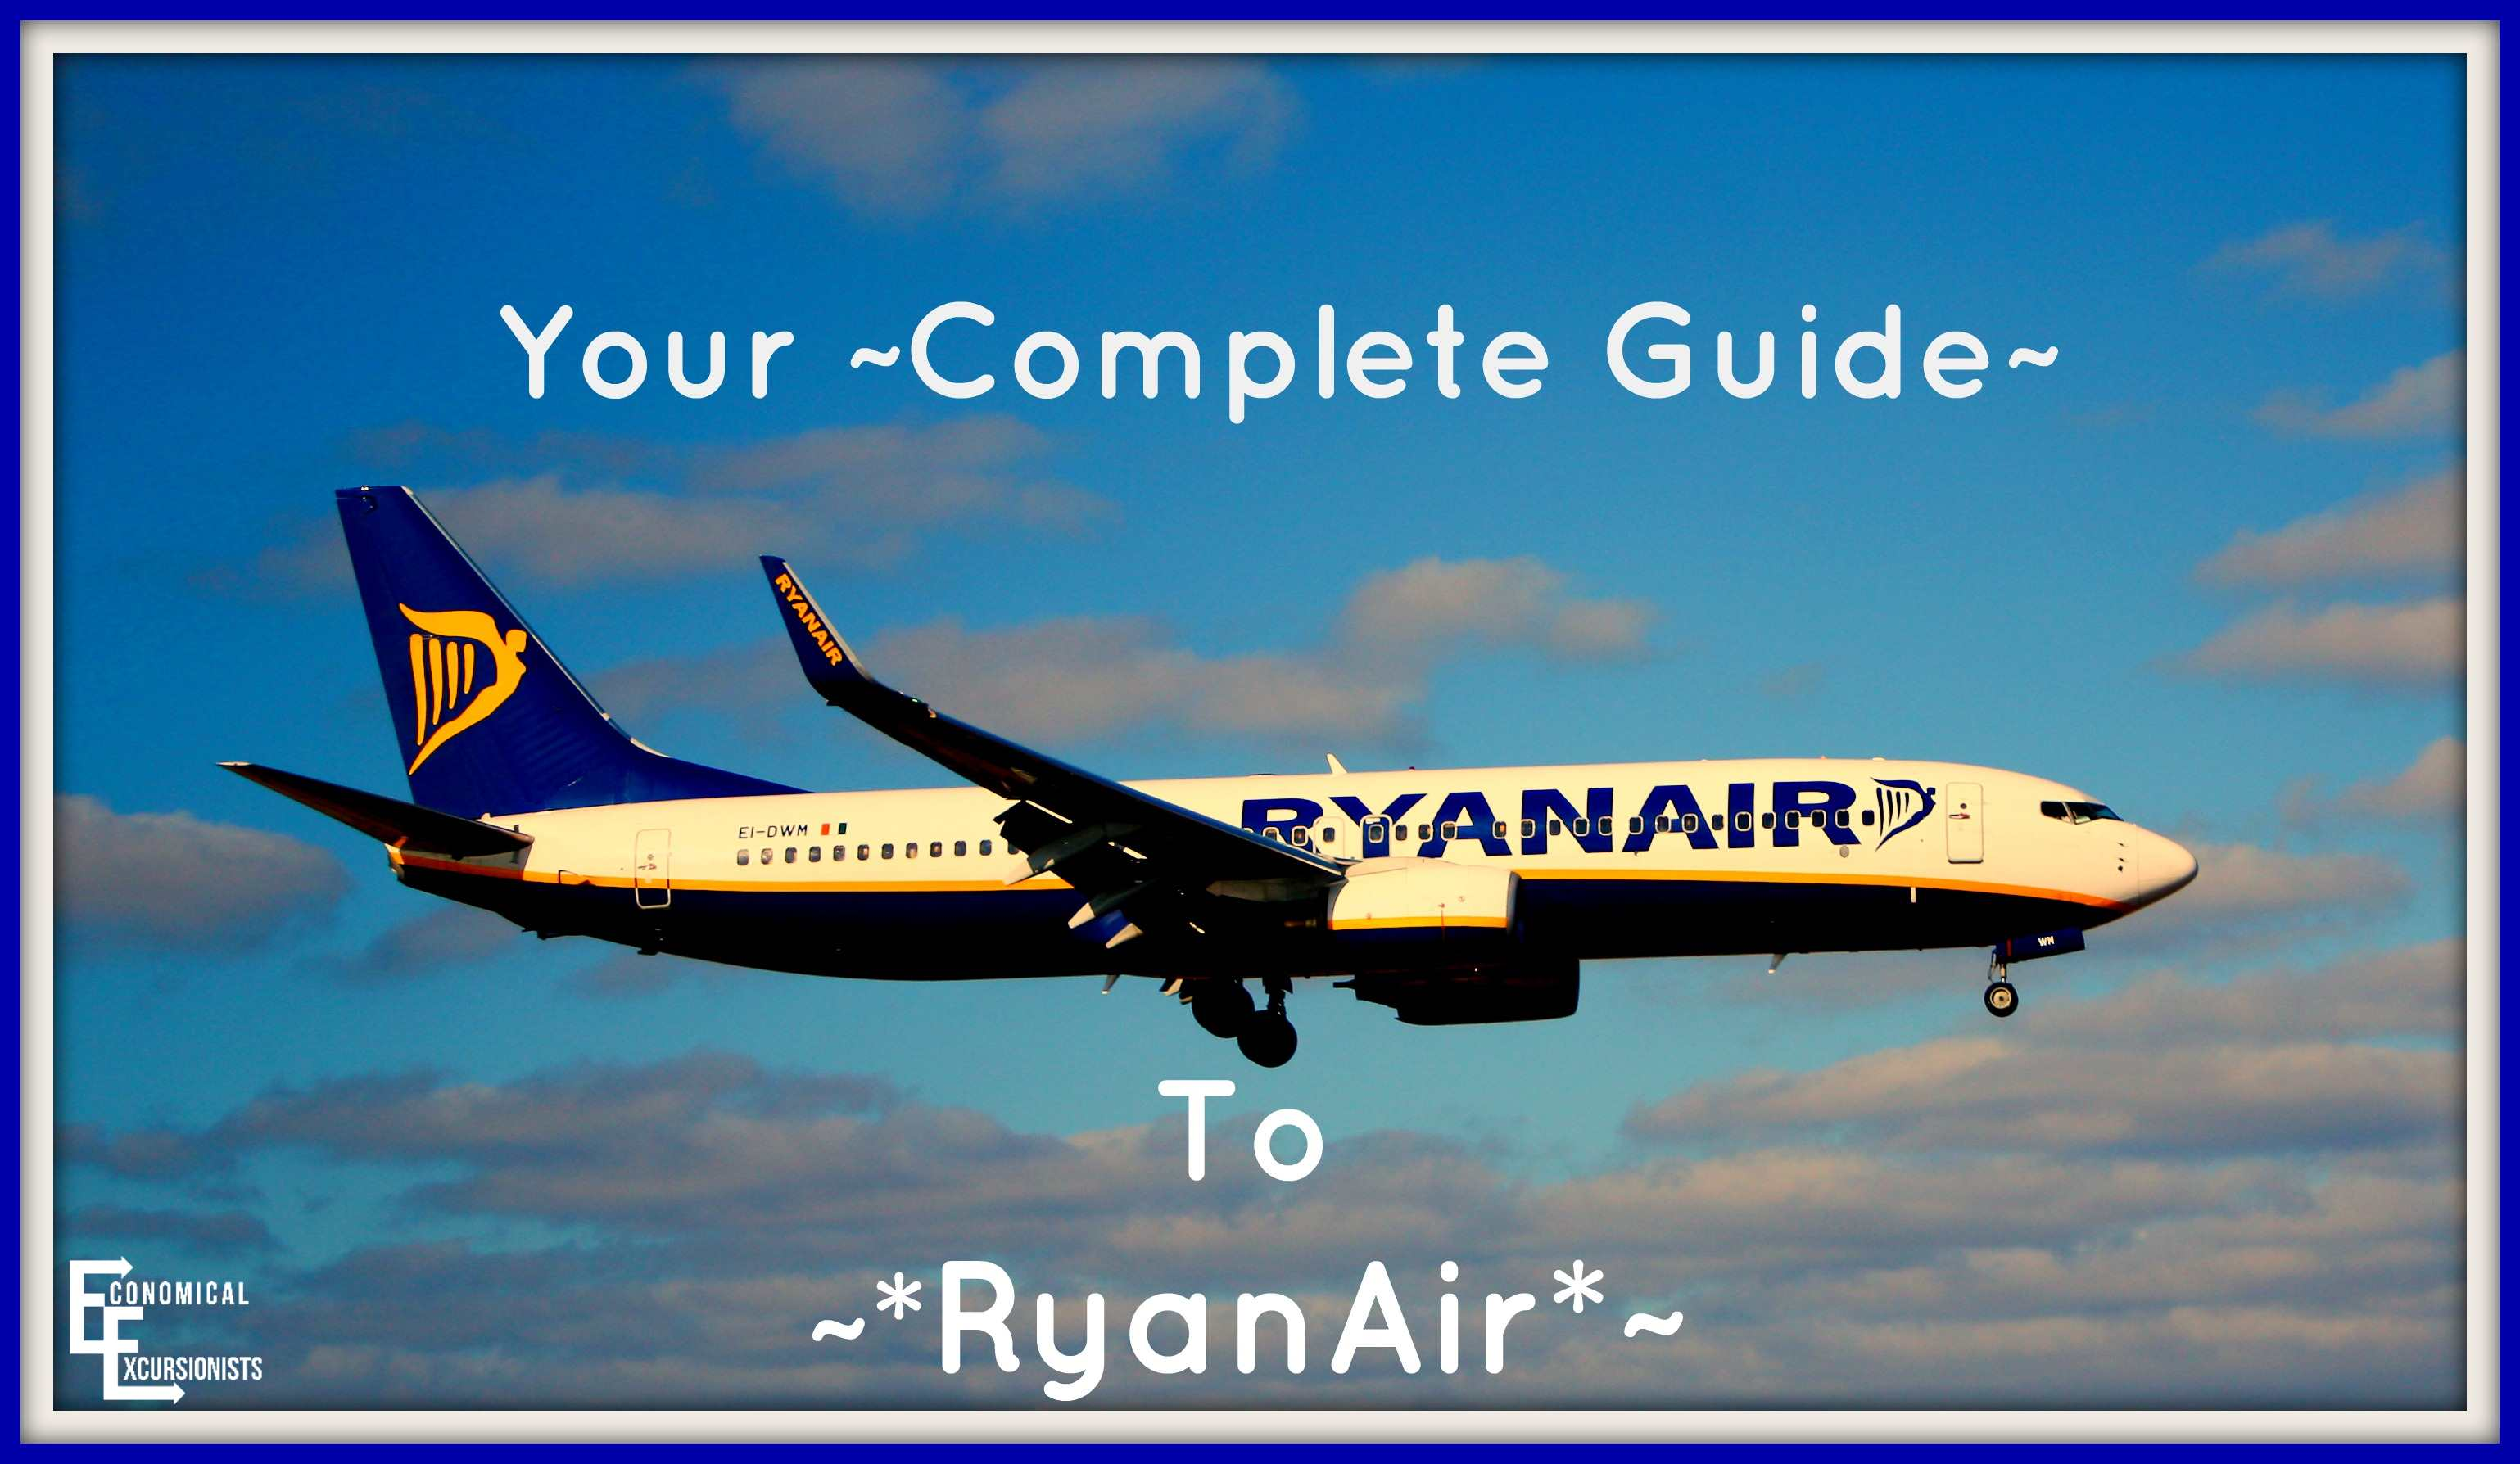 Ryanair The Complete Guide